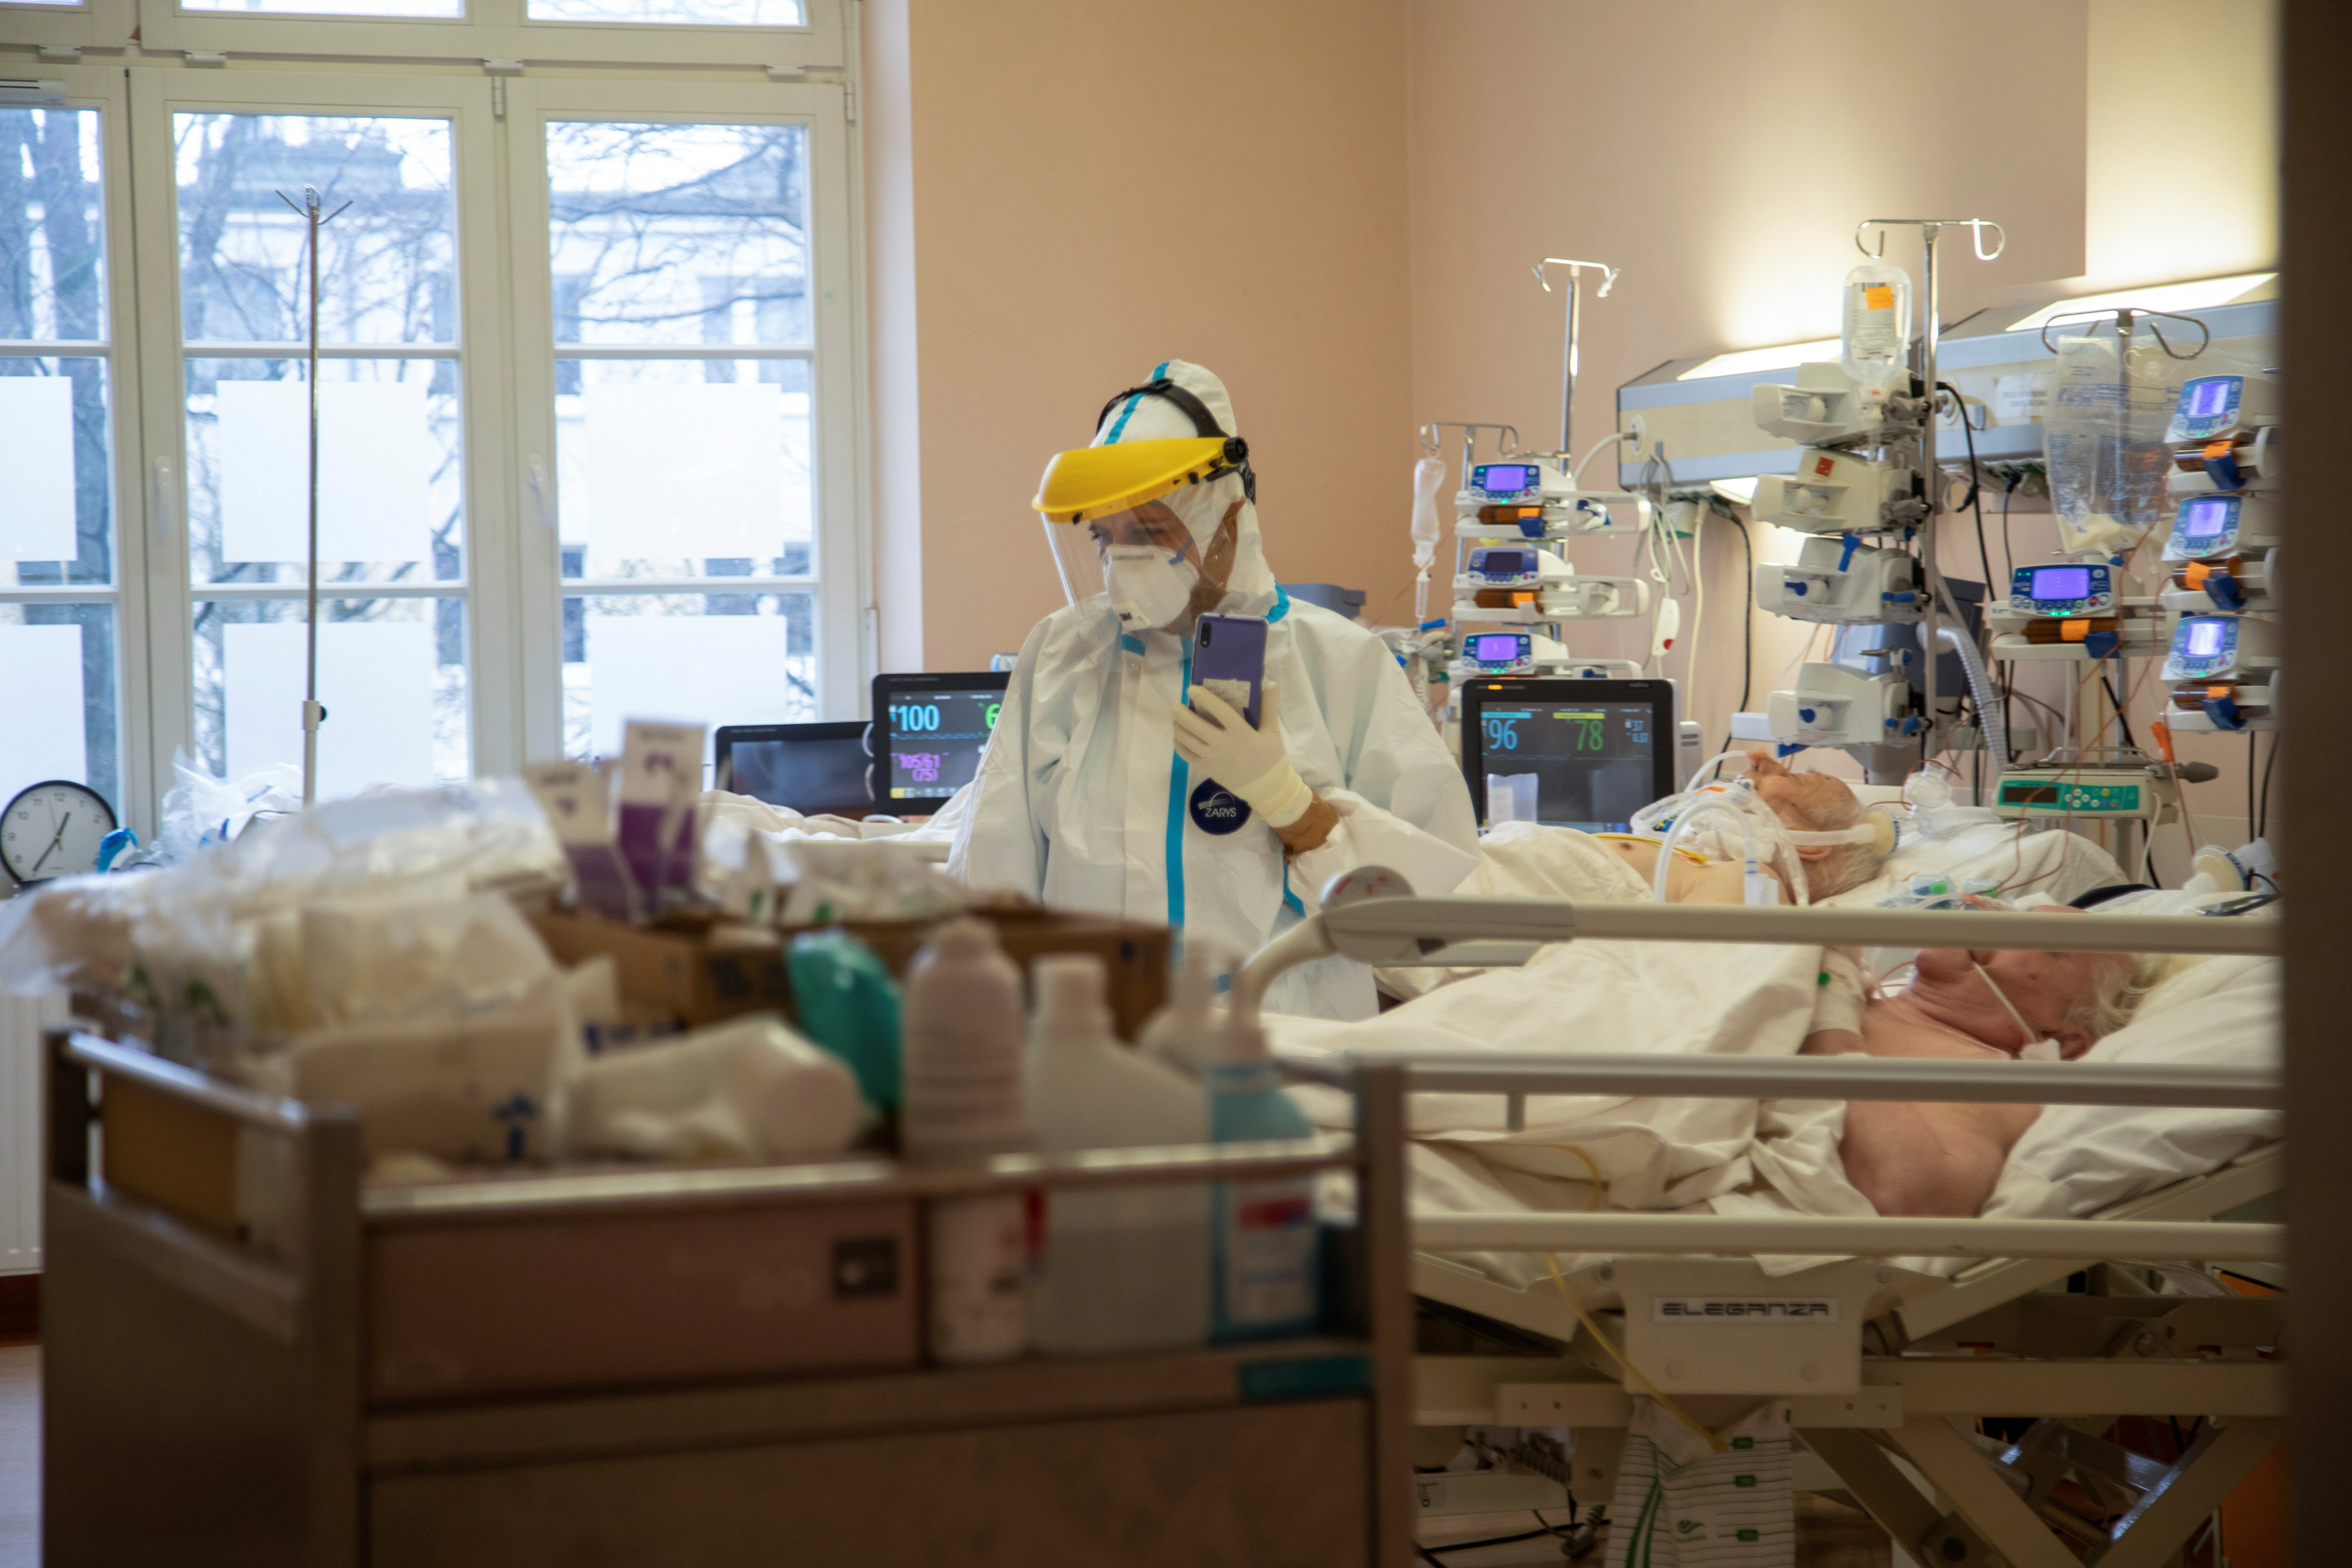 A medical worker attends to patients inside the coronavirus disease (COVID-19) ward at the University Clinical Hospital in Olsztyn, Poland, March 2, 2021. Picture taken March 2, 2021. REUTERS/Kuba Stezycki - RC2L3M96U7QA